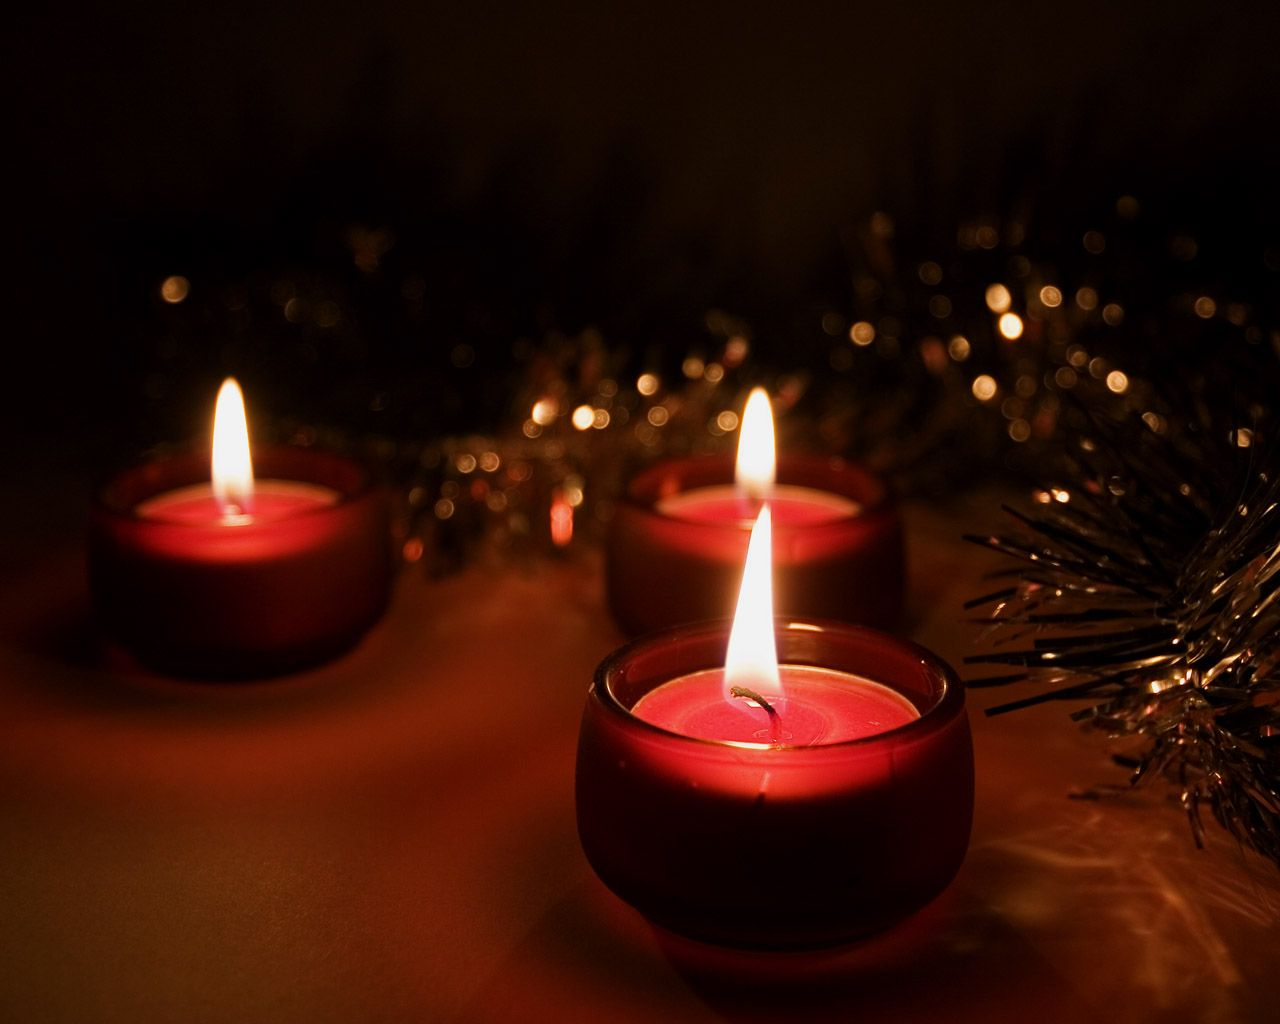 Romantic Candle Light Candlelight Pictures Candles At Night 1028x1024 NO18 Wallpaper